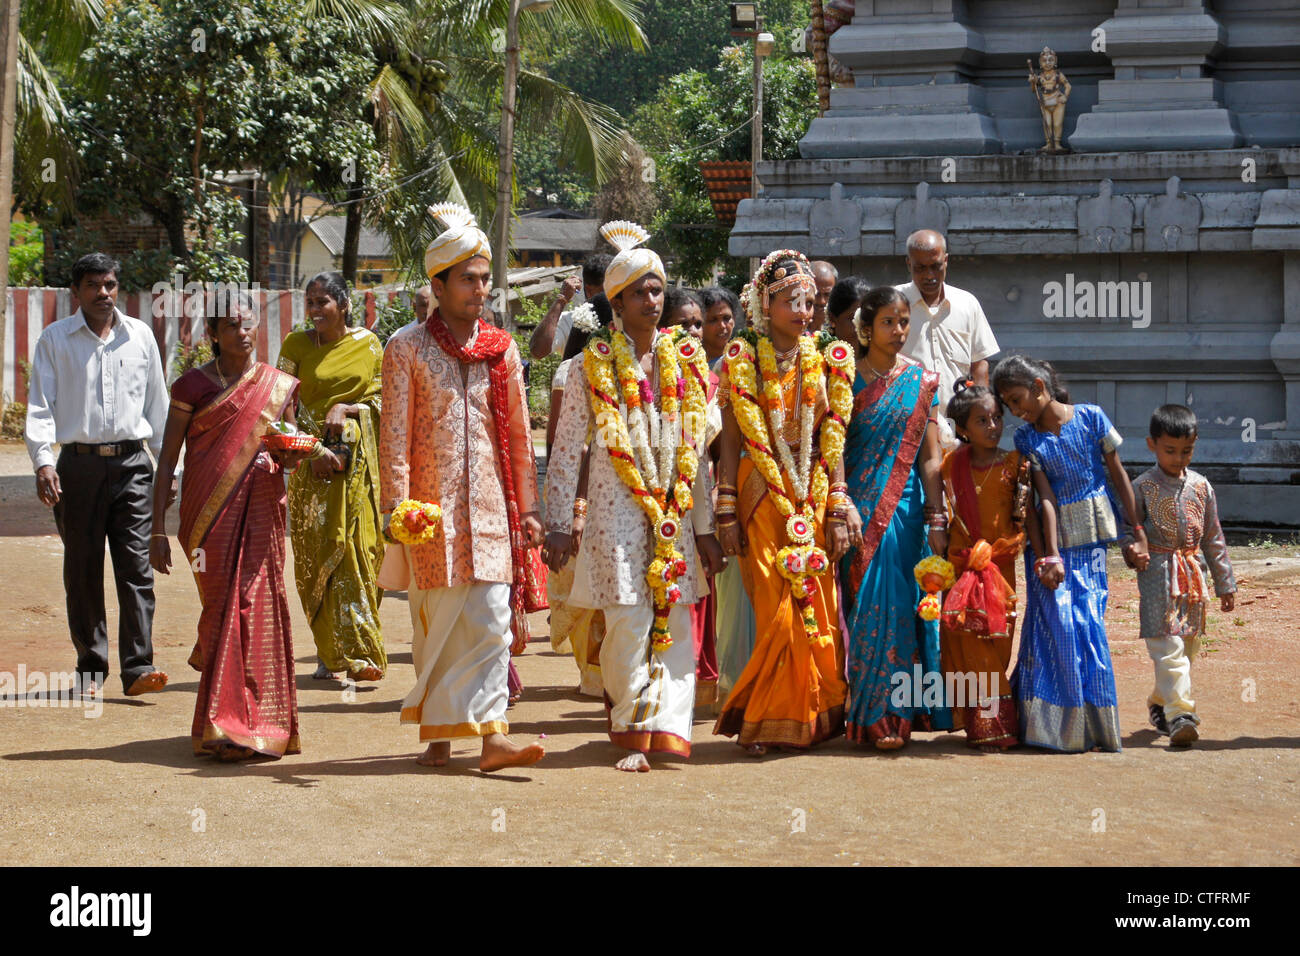 Hindu wedding party at temple matale sri lanka stock for Wedding party dresses in sri lanka